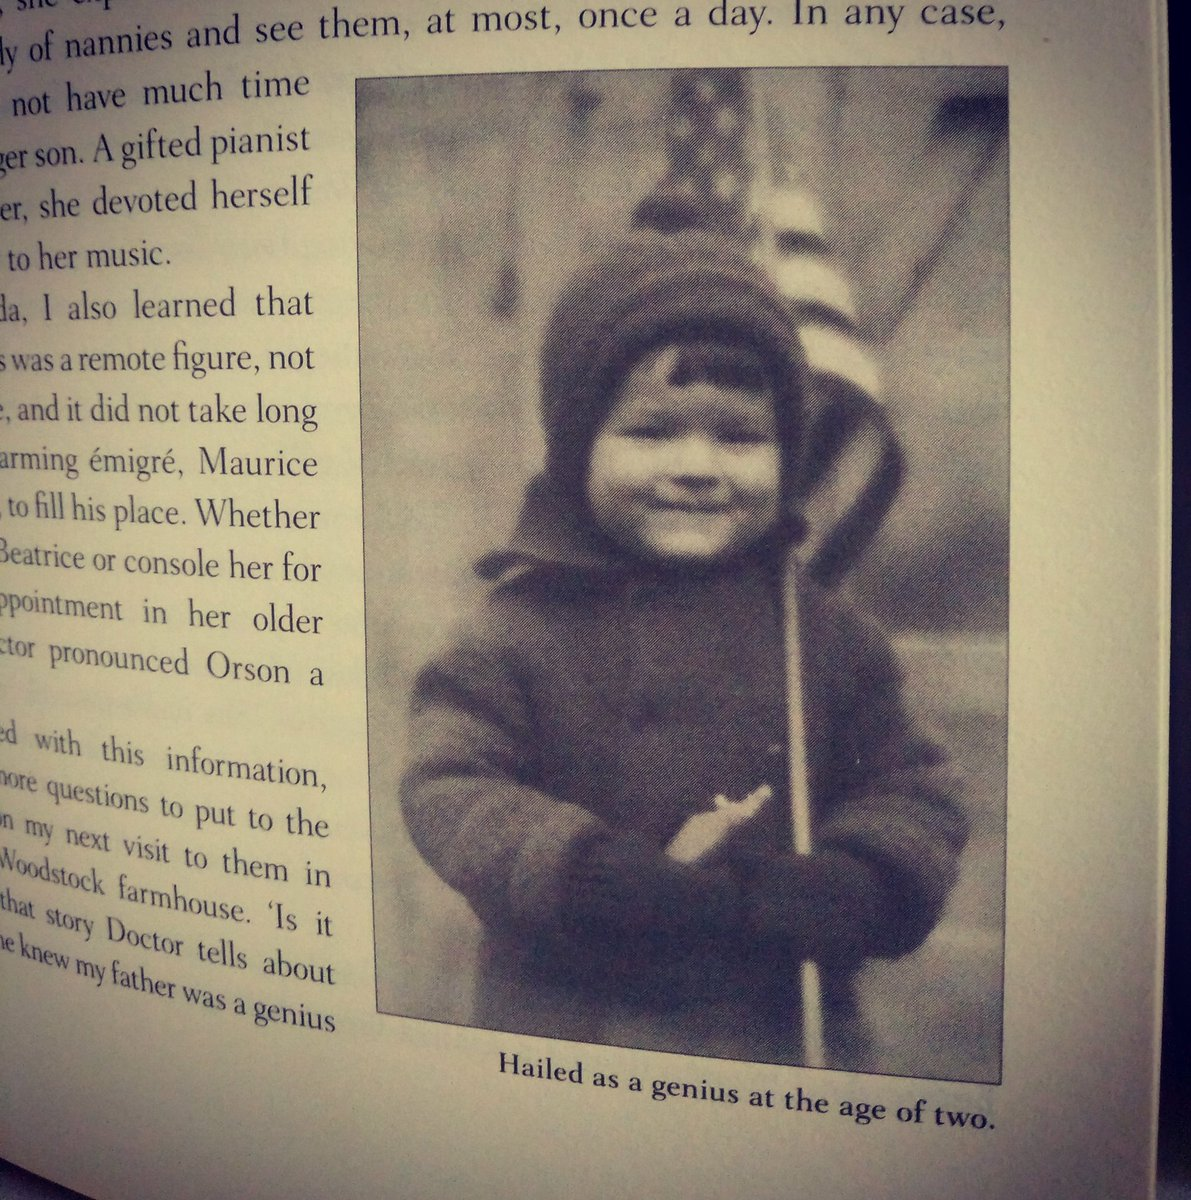 """Happy birthday #OrsonWelles born 6 May 1915 🎂 Picture from the book """"In my father's shadow """" by Chris #Welles Feder"""